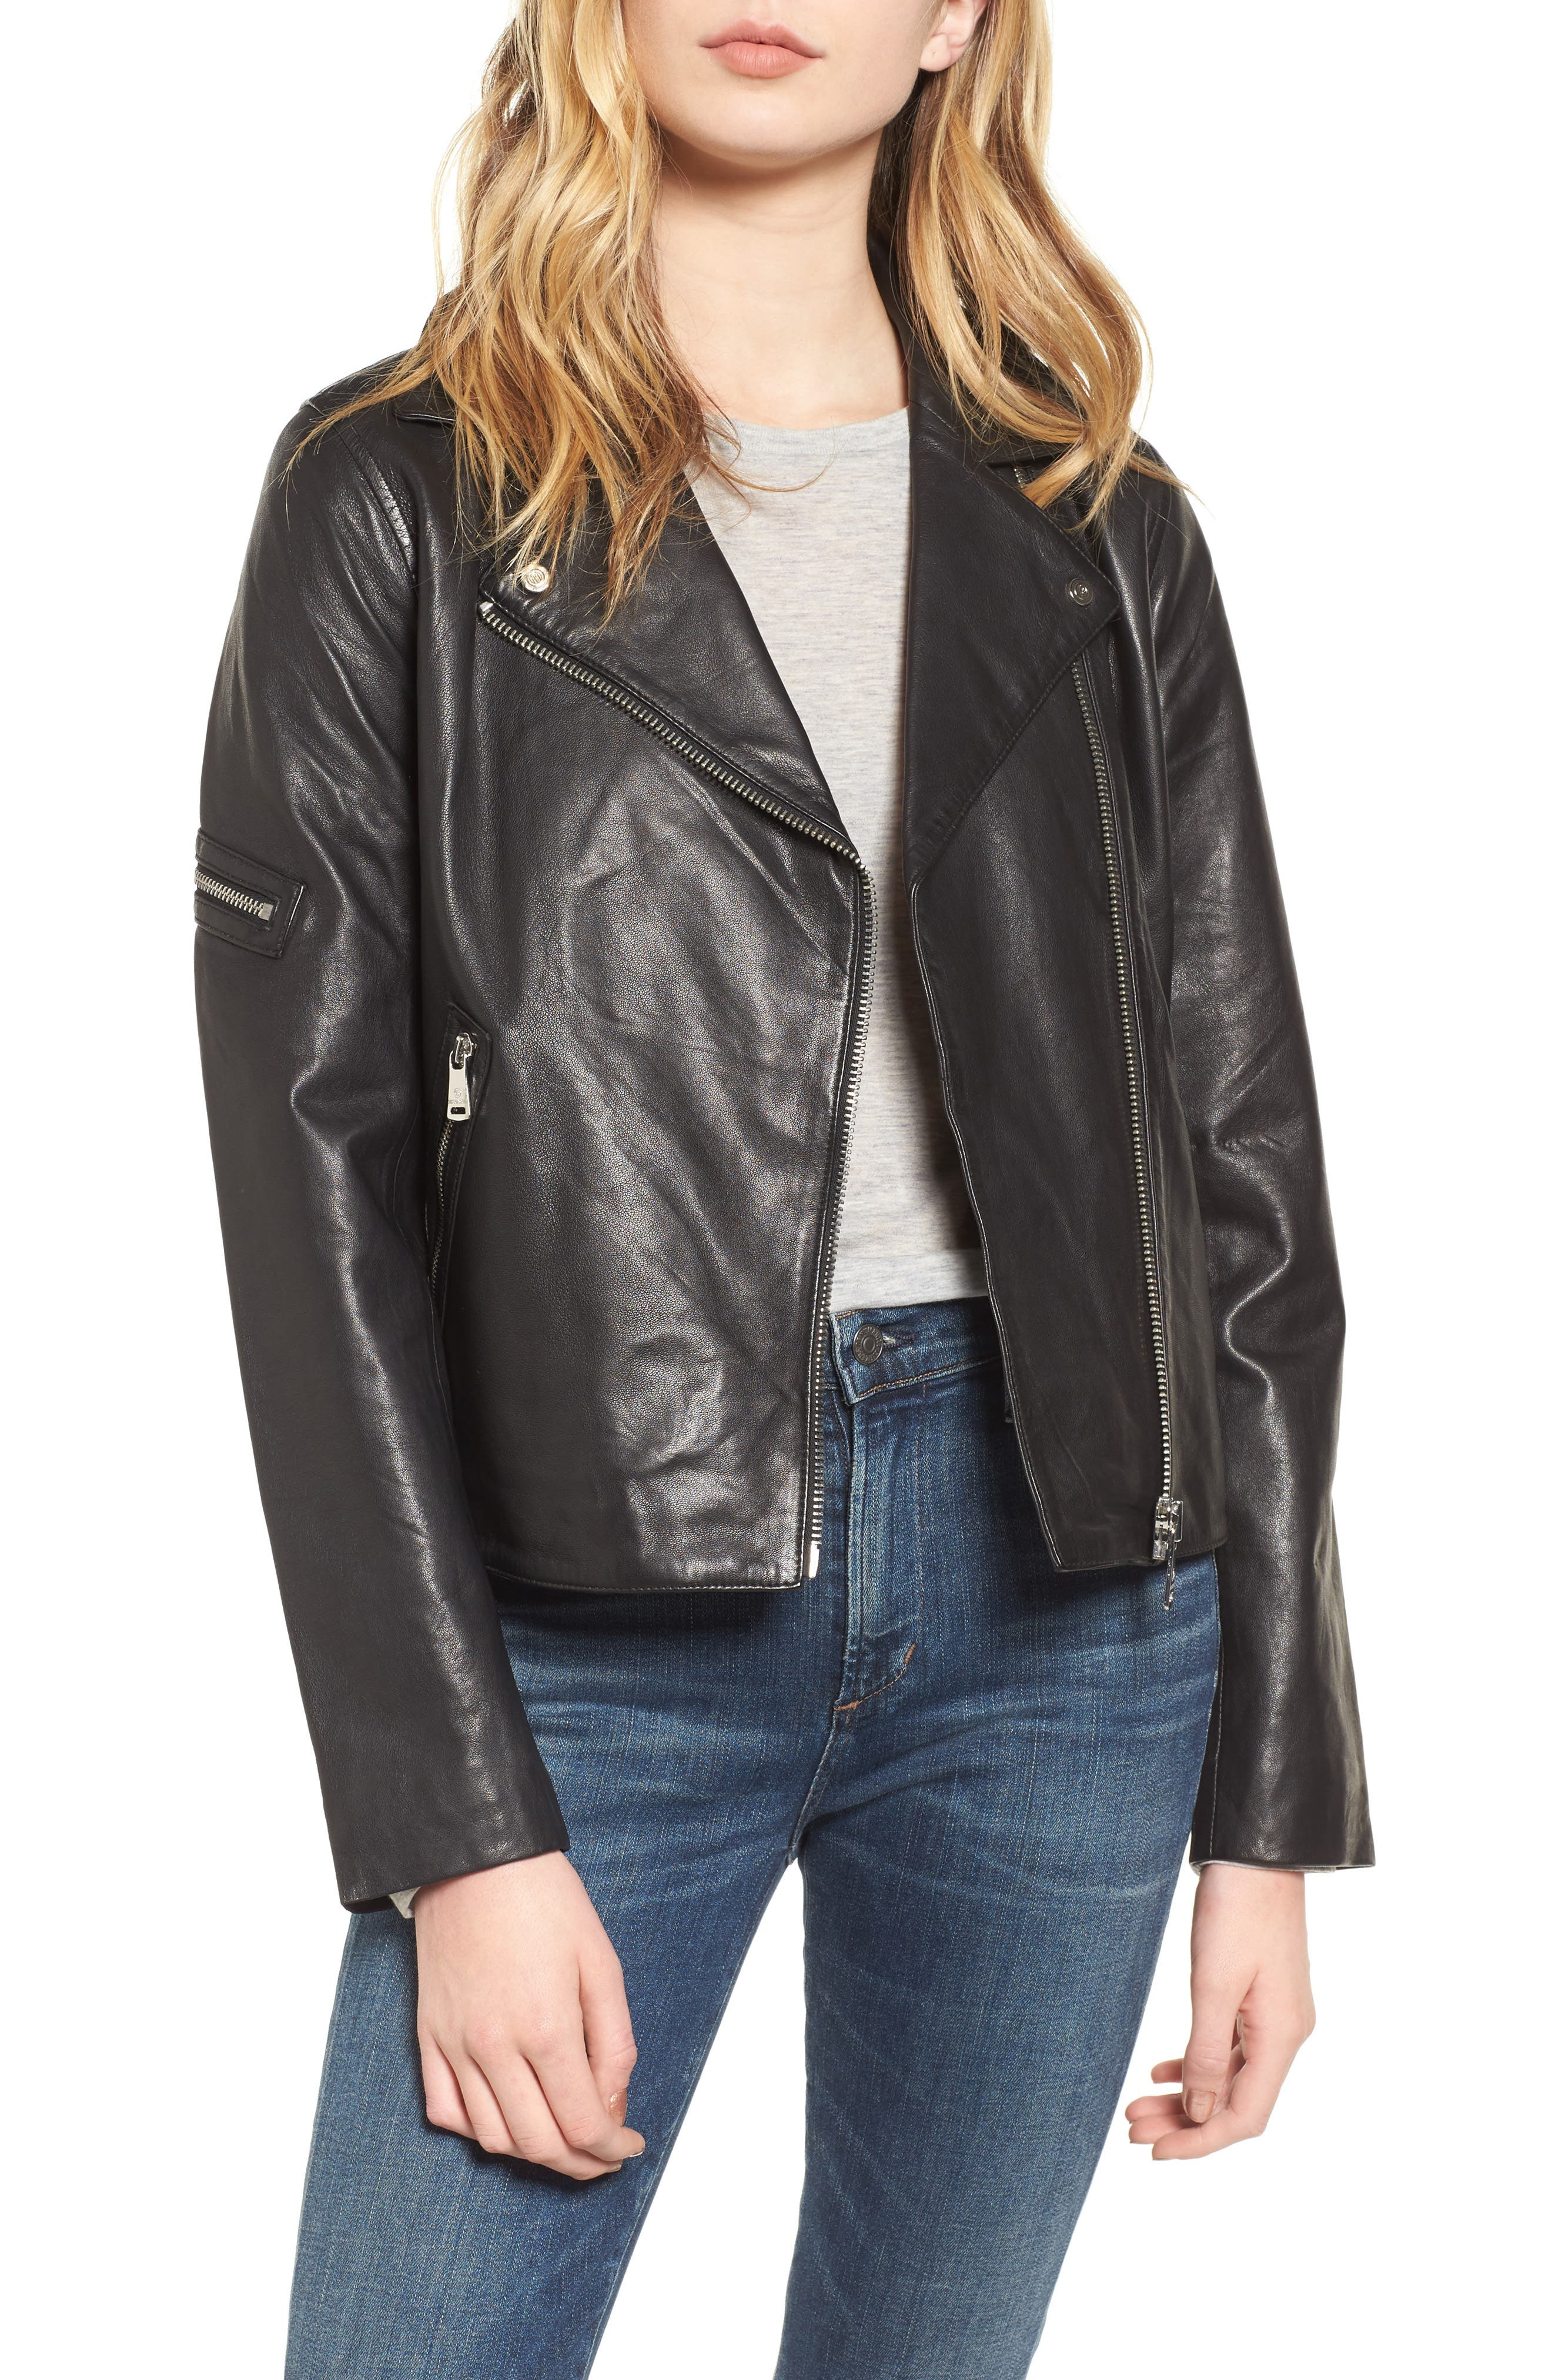 Kirwin Leather Moto Jacket,                             Main thumbnail 1, color,                             Black